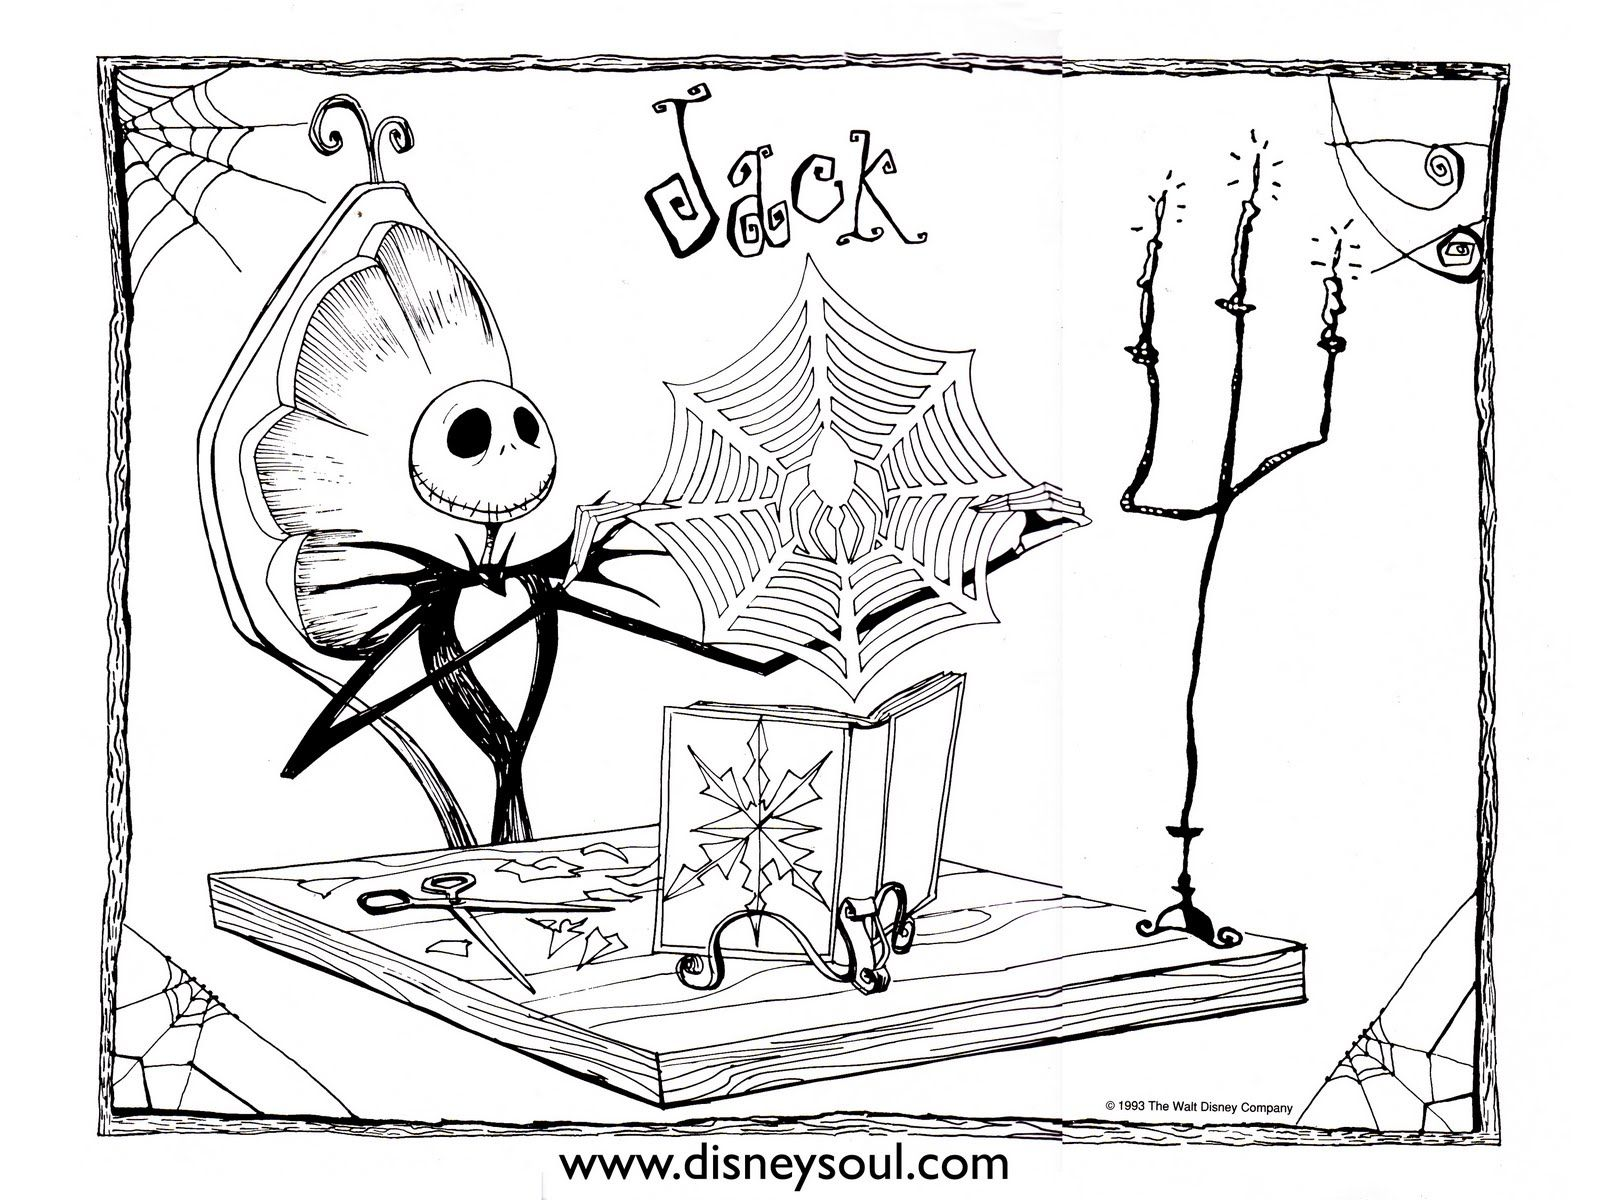 nightmare before christmas coloring pages for kids - Nightmare Before Christmas Coloring Pages